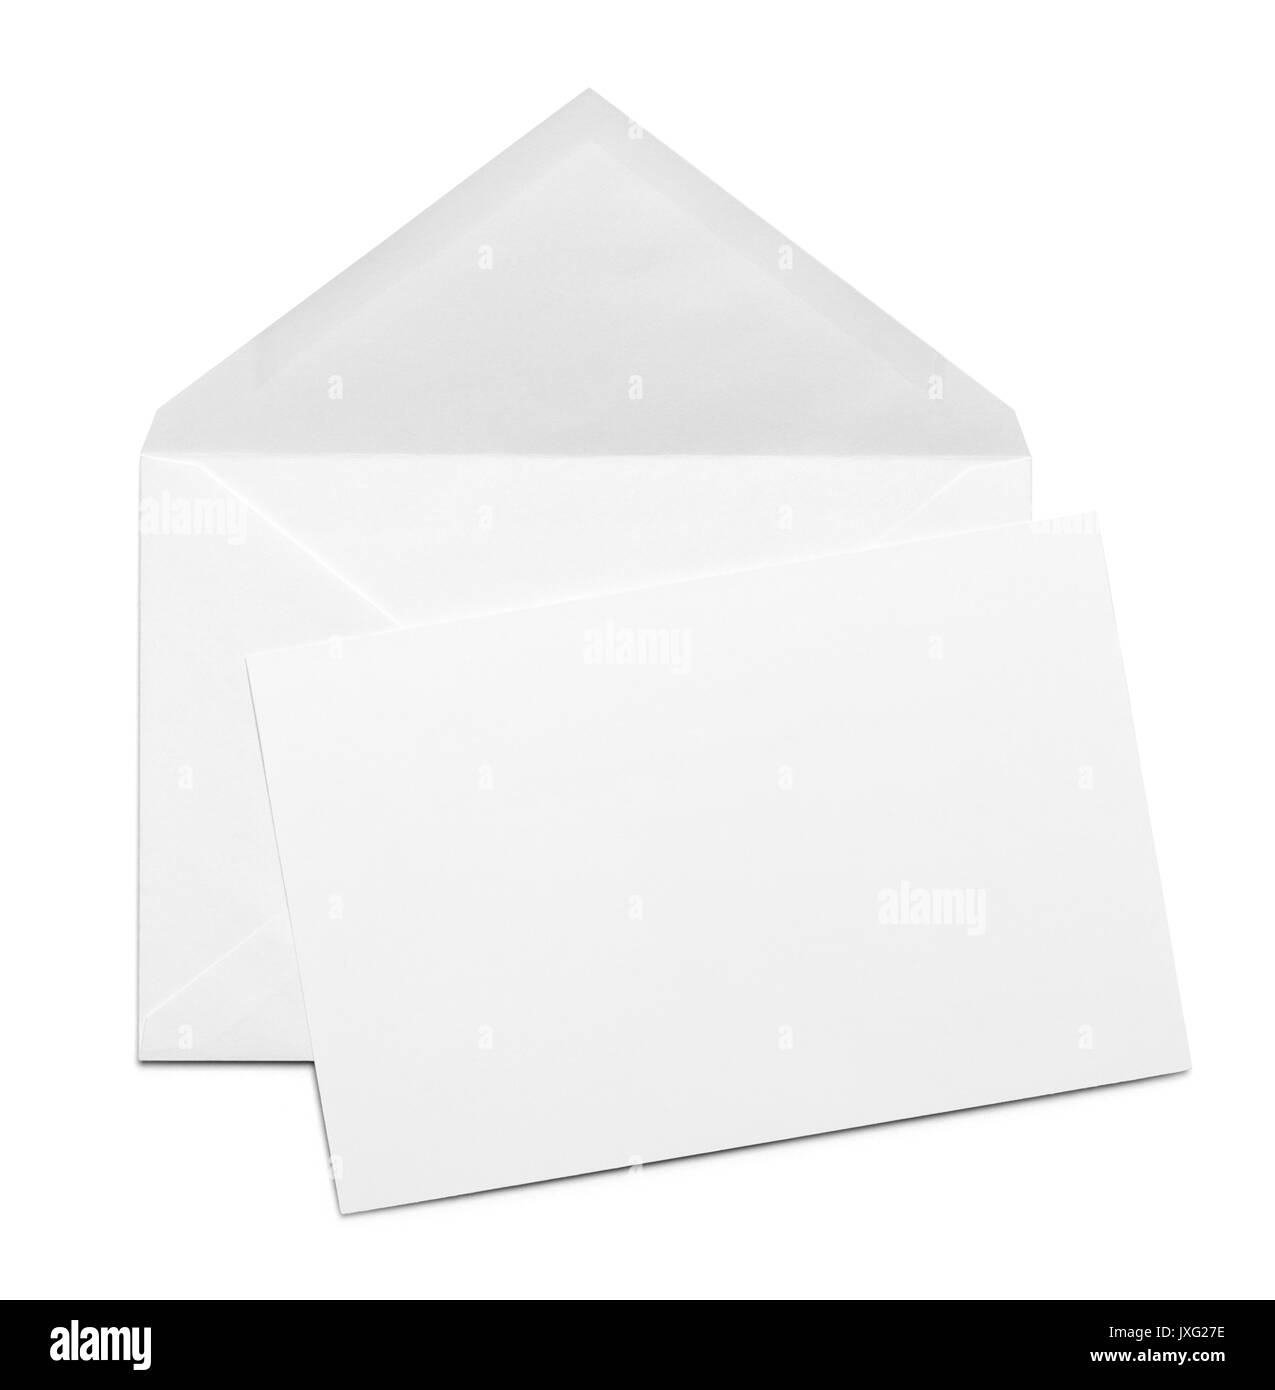 Open White Envelope with Card Isolated on White Background. - Stock Image